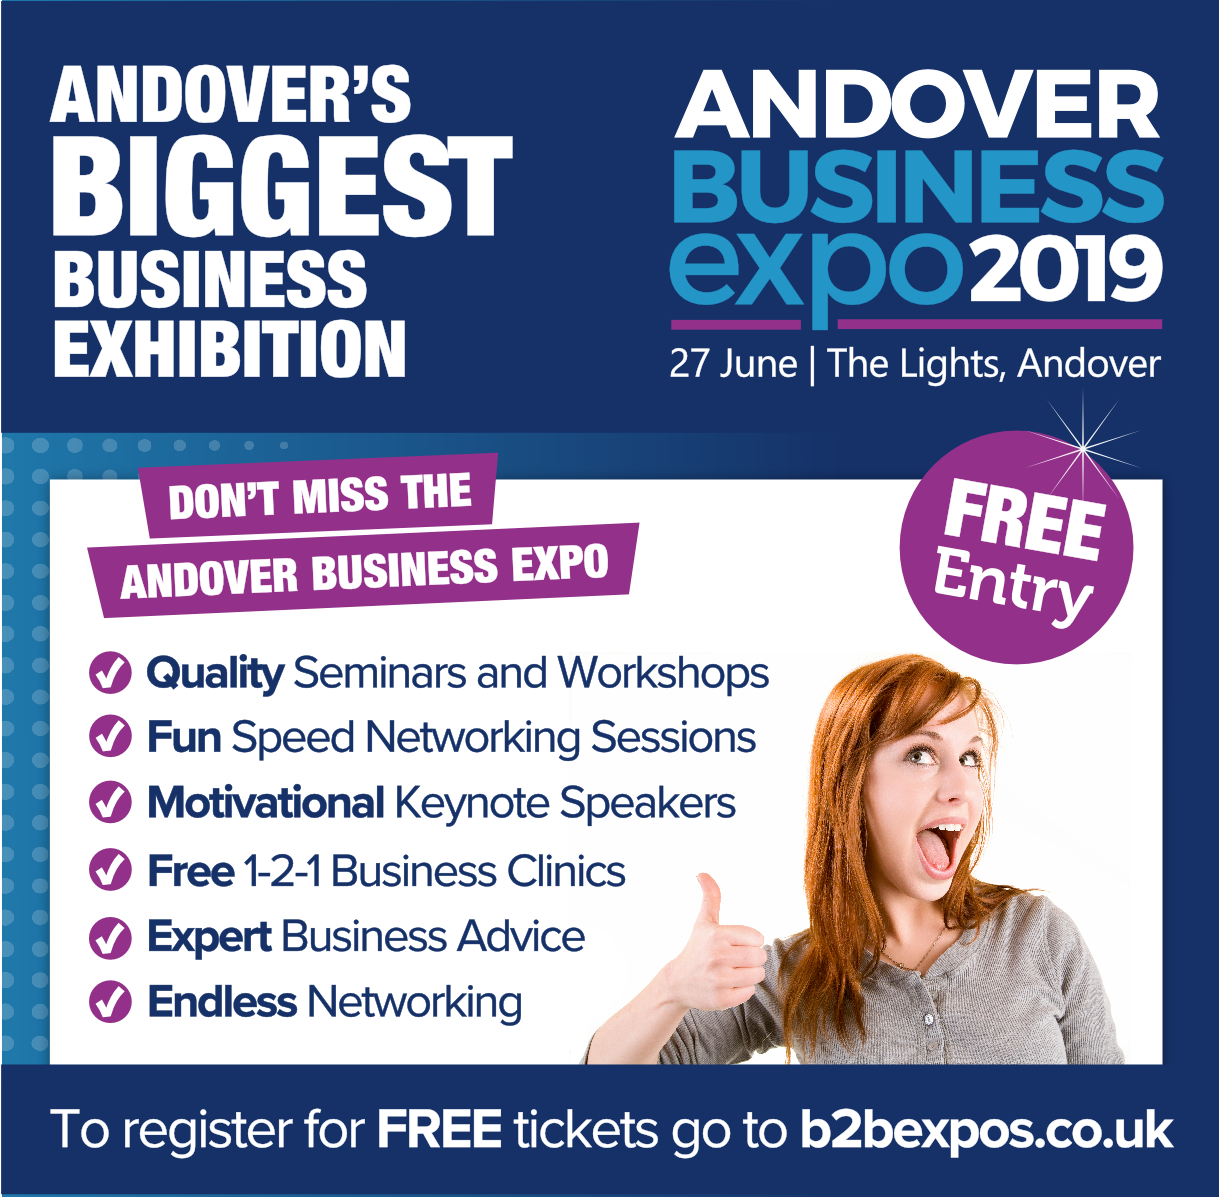 Andover Business Expo